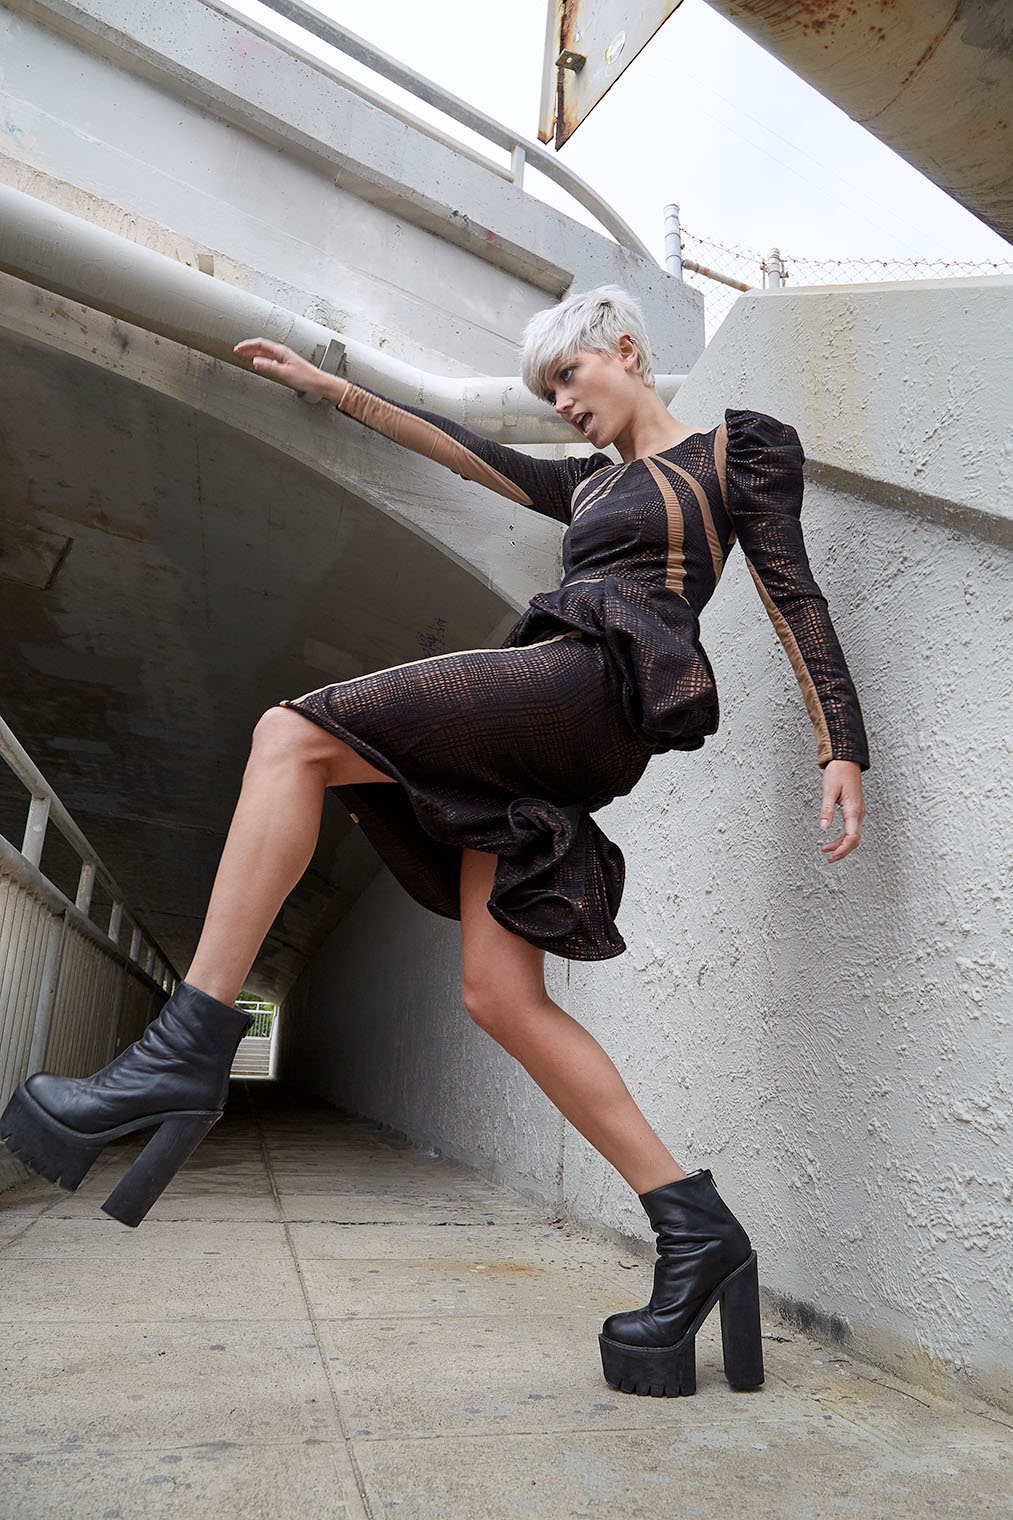 woman in black outfit strong movement in fashion photograph